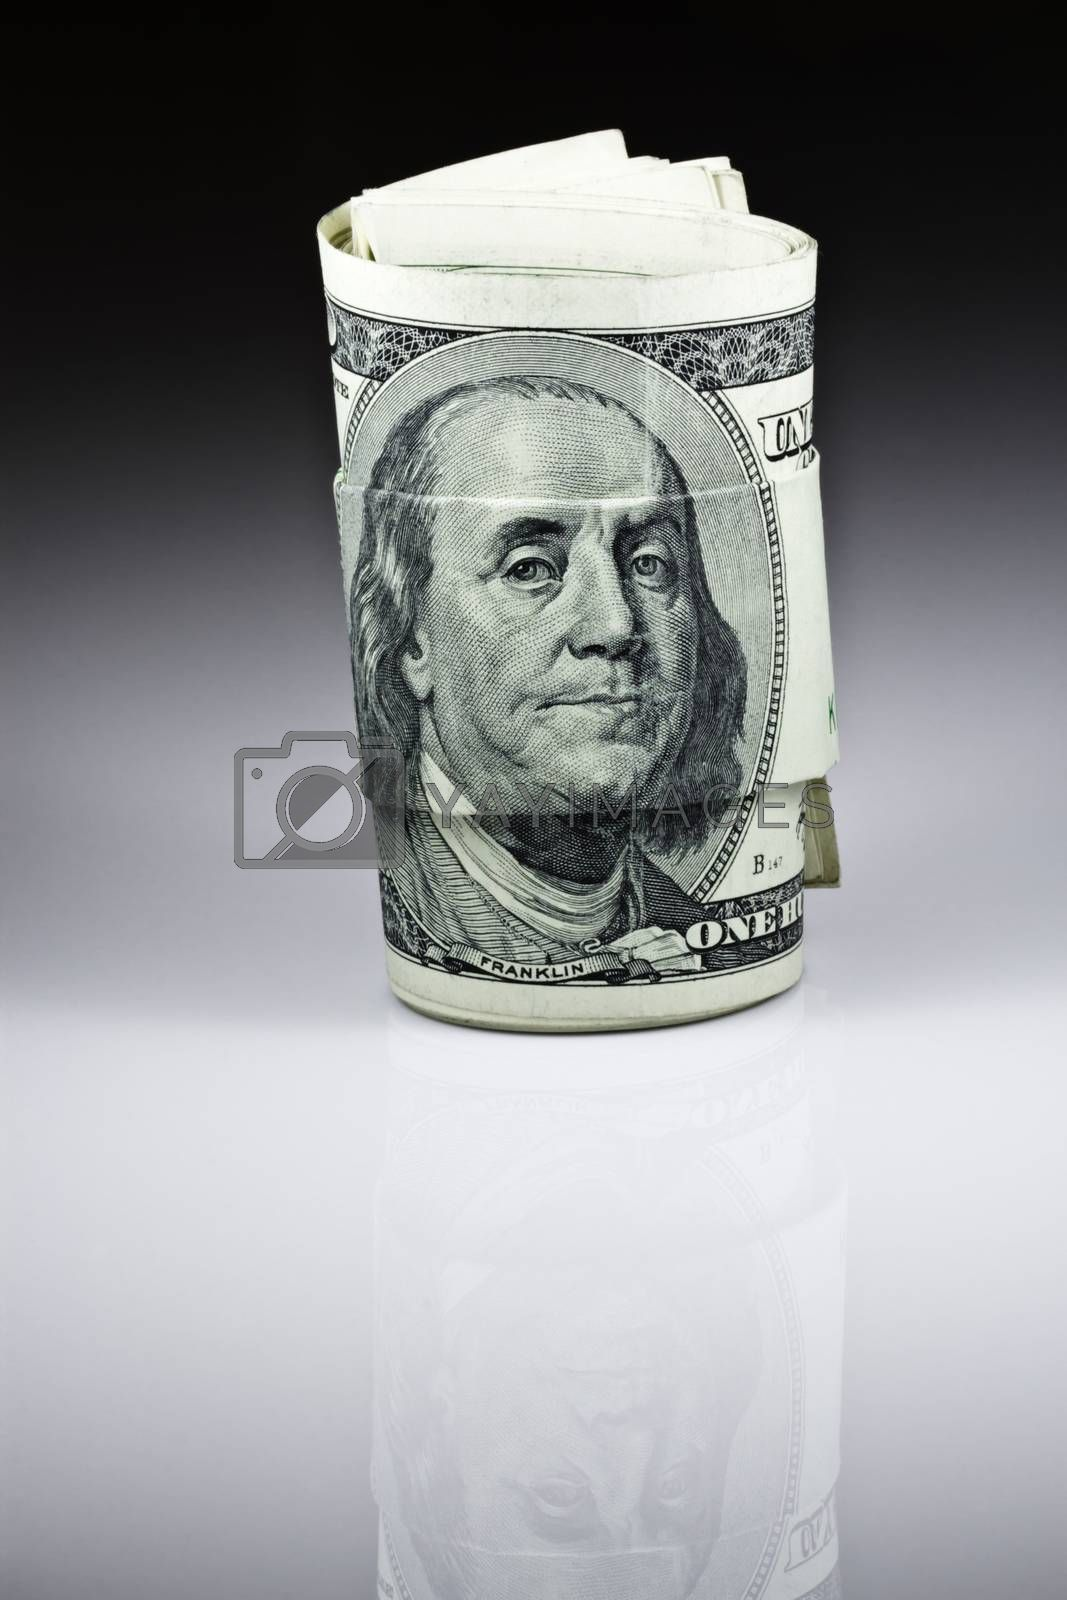 The money hundred dollar bills of American with black and white gradient background